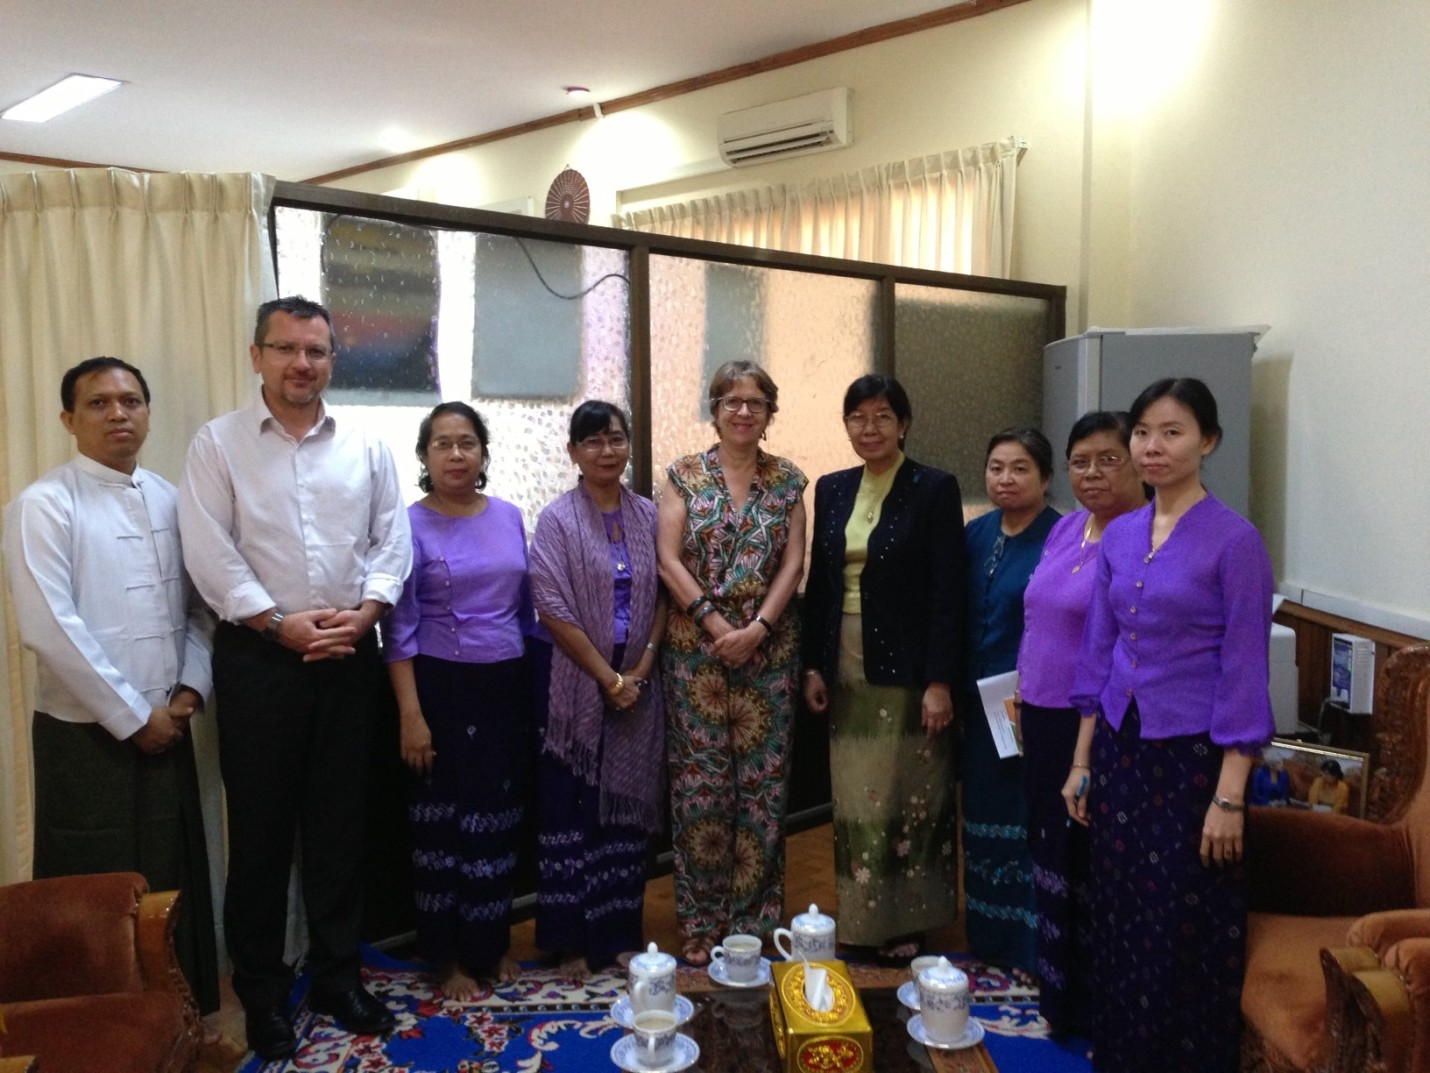 The Head of Convention Secretariat meets Deputy Minister of Health of Myanmar and her staff